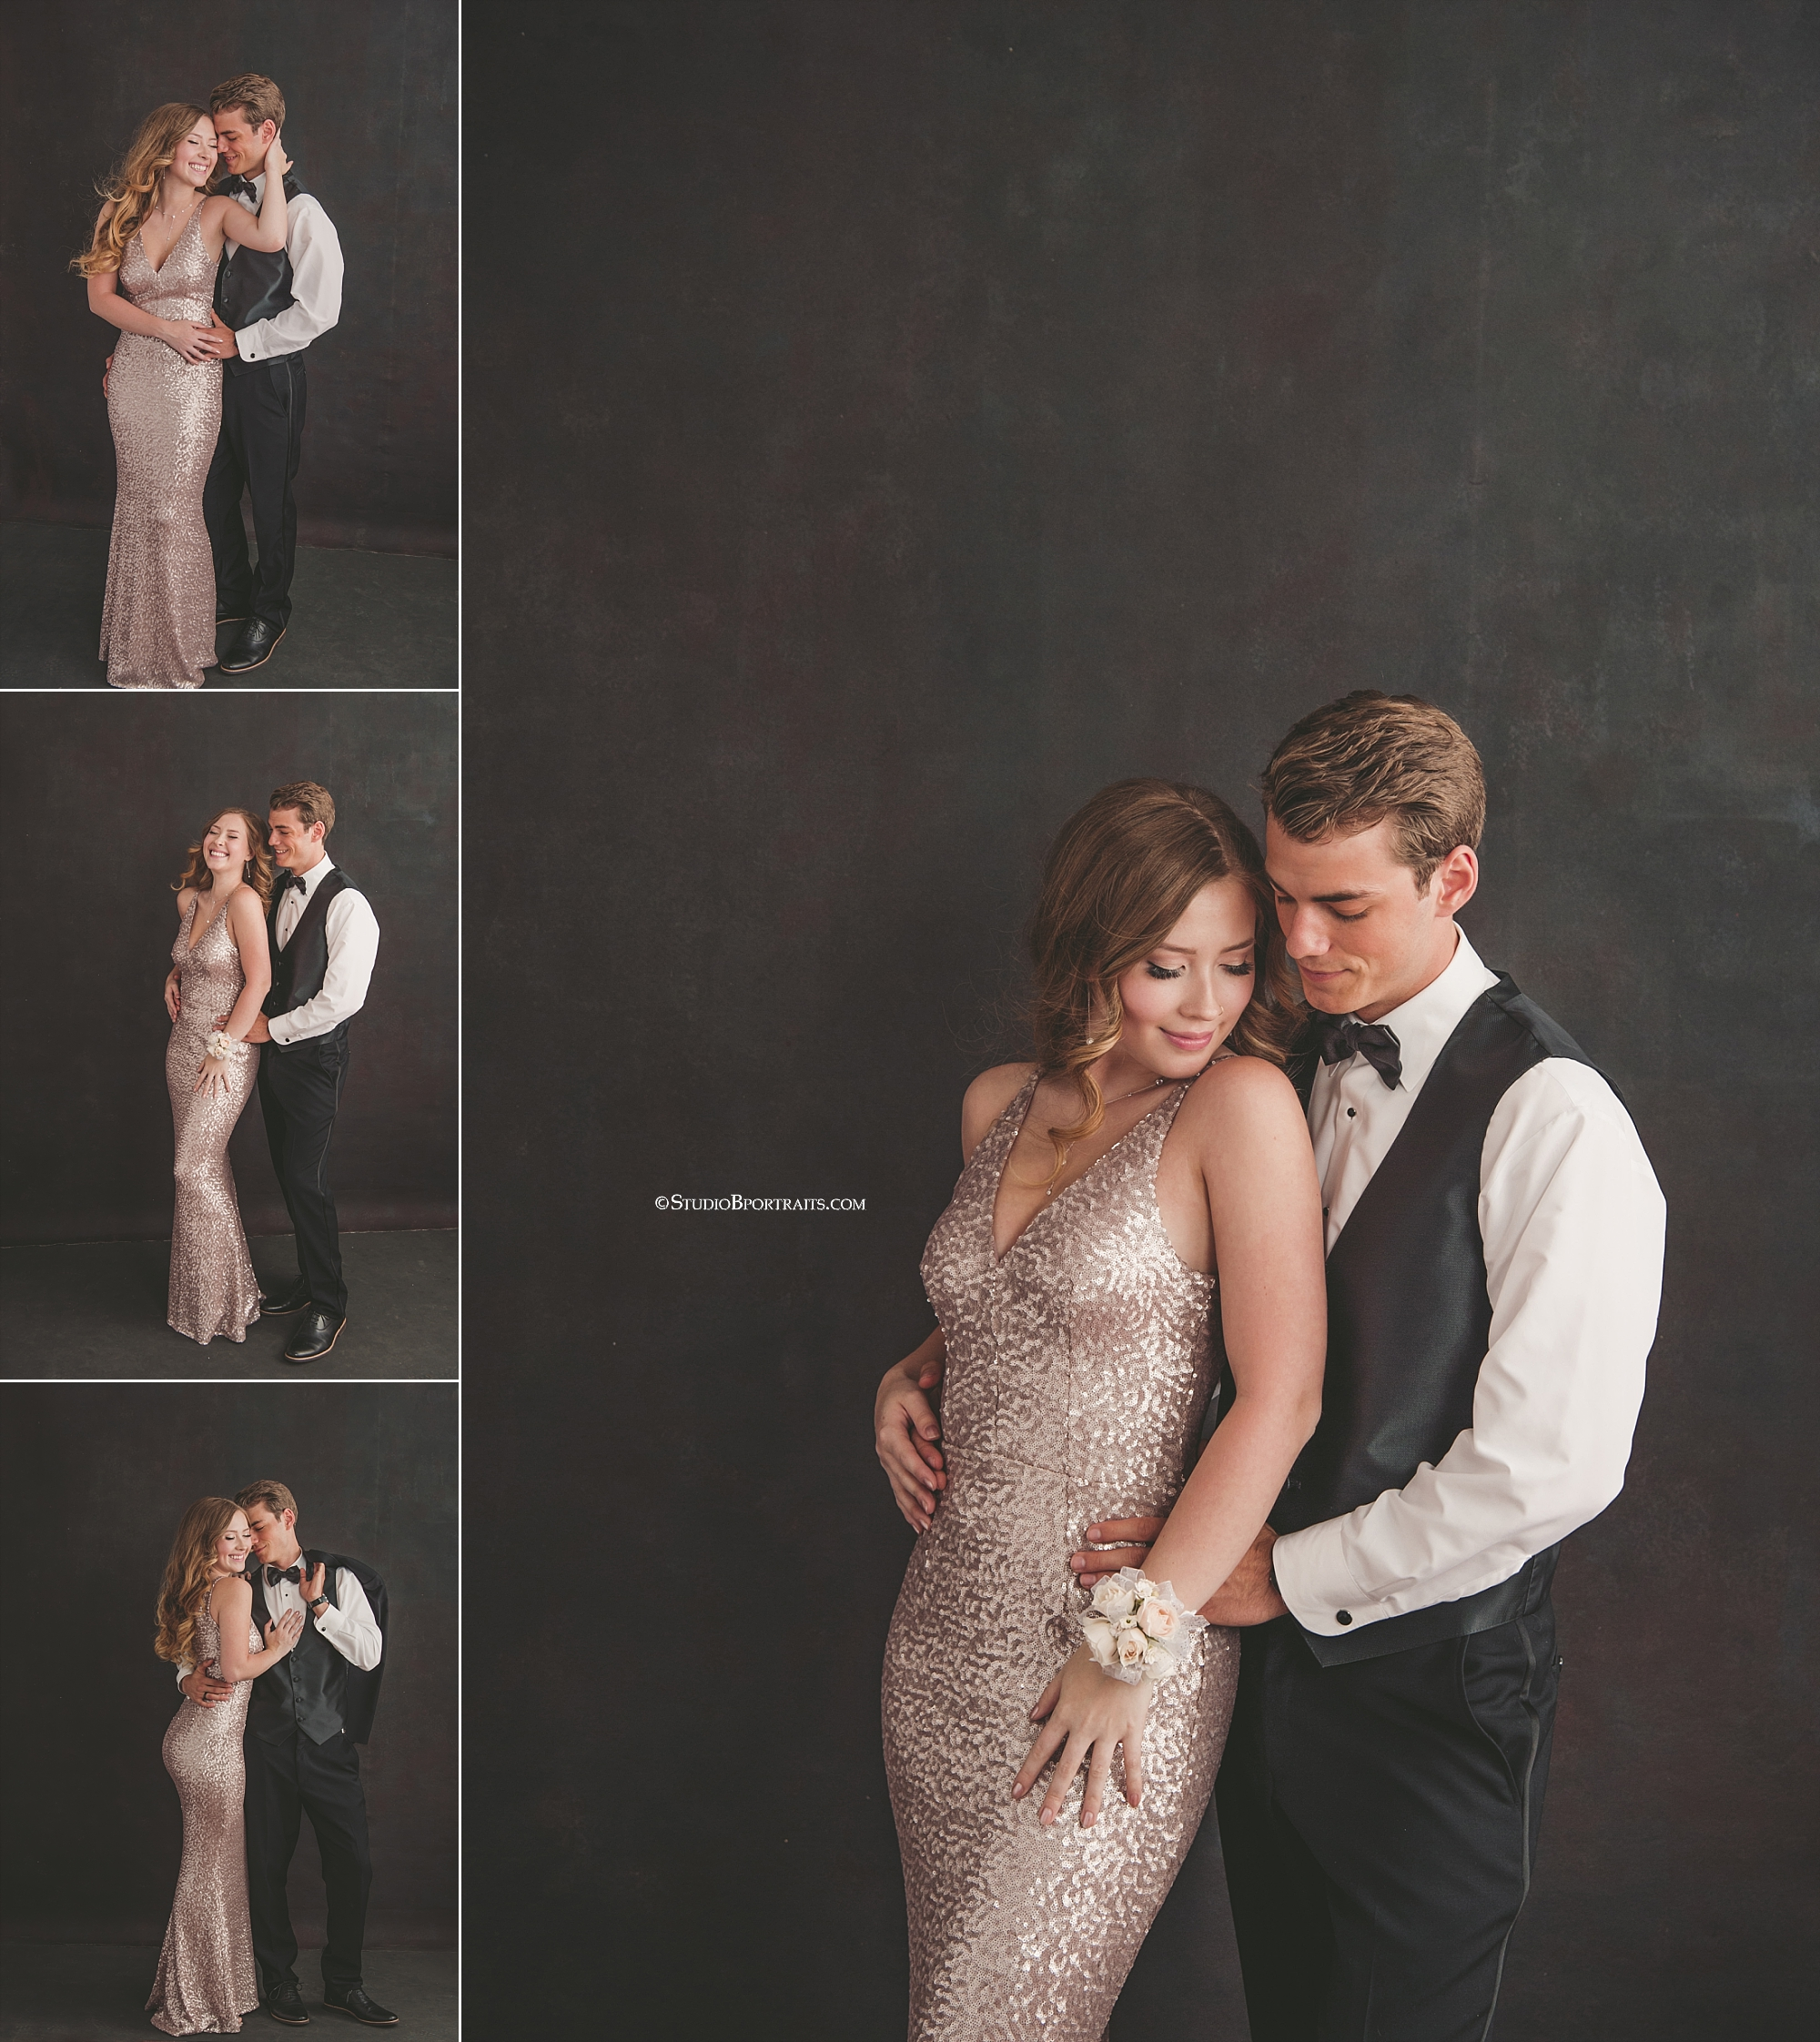 Studio B Portraits_Vanity Fair inspired senior pictures in formal gown and tux_0095.jpg